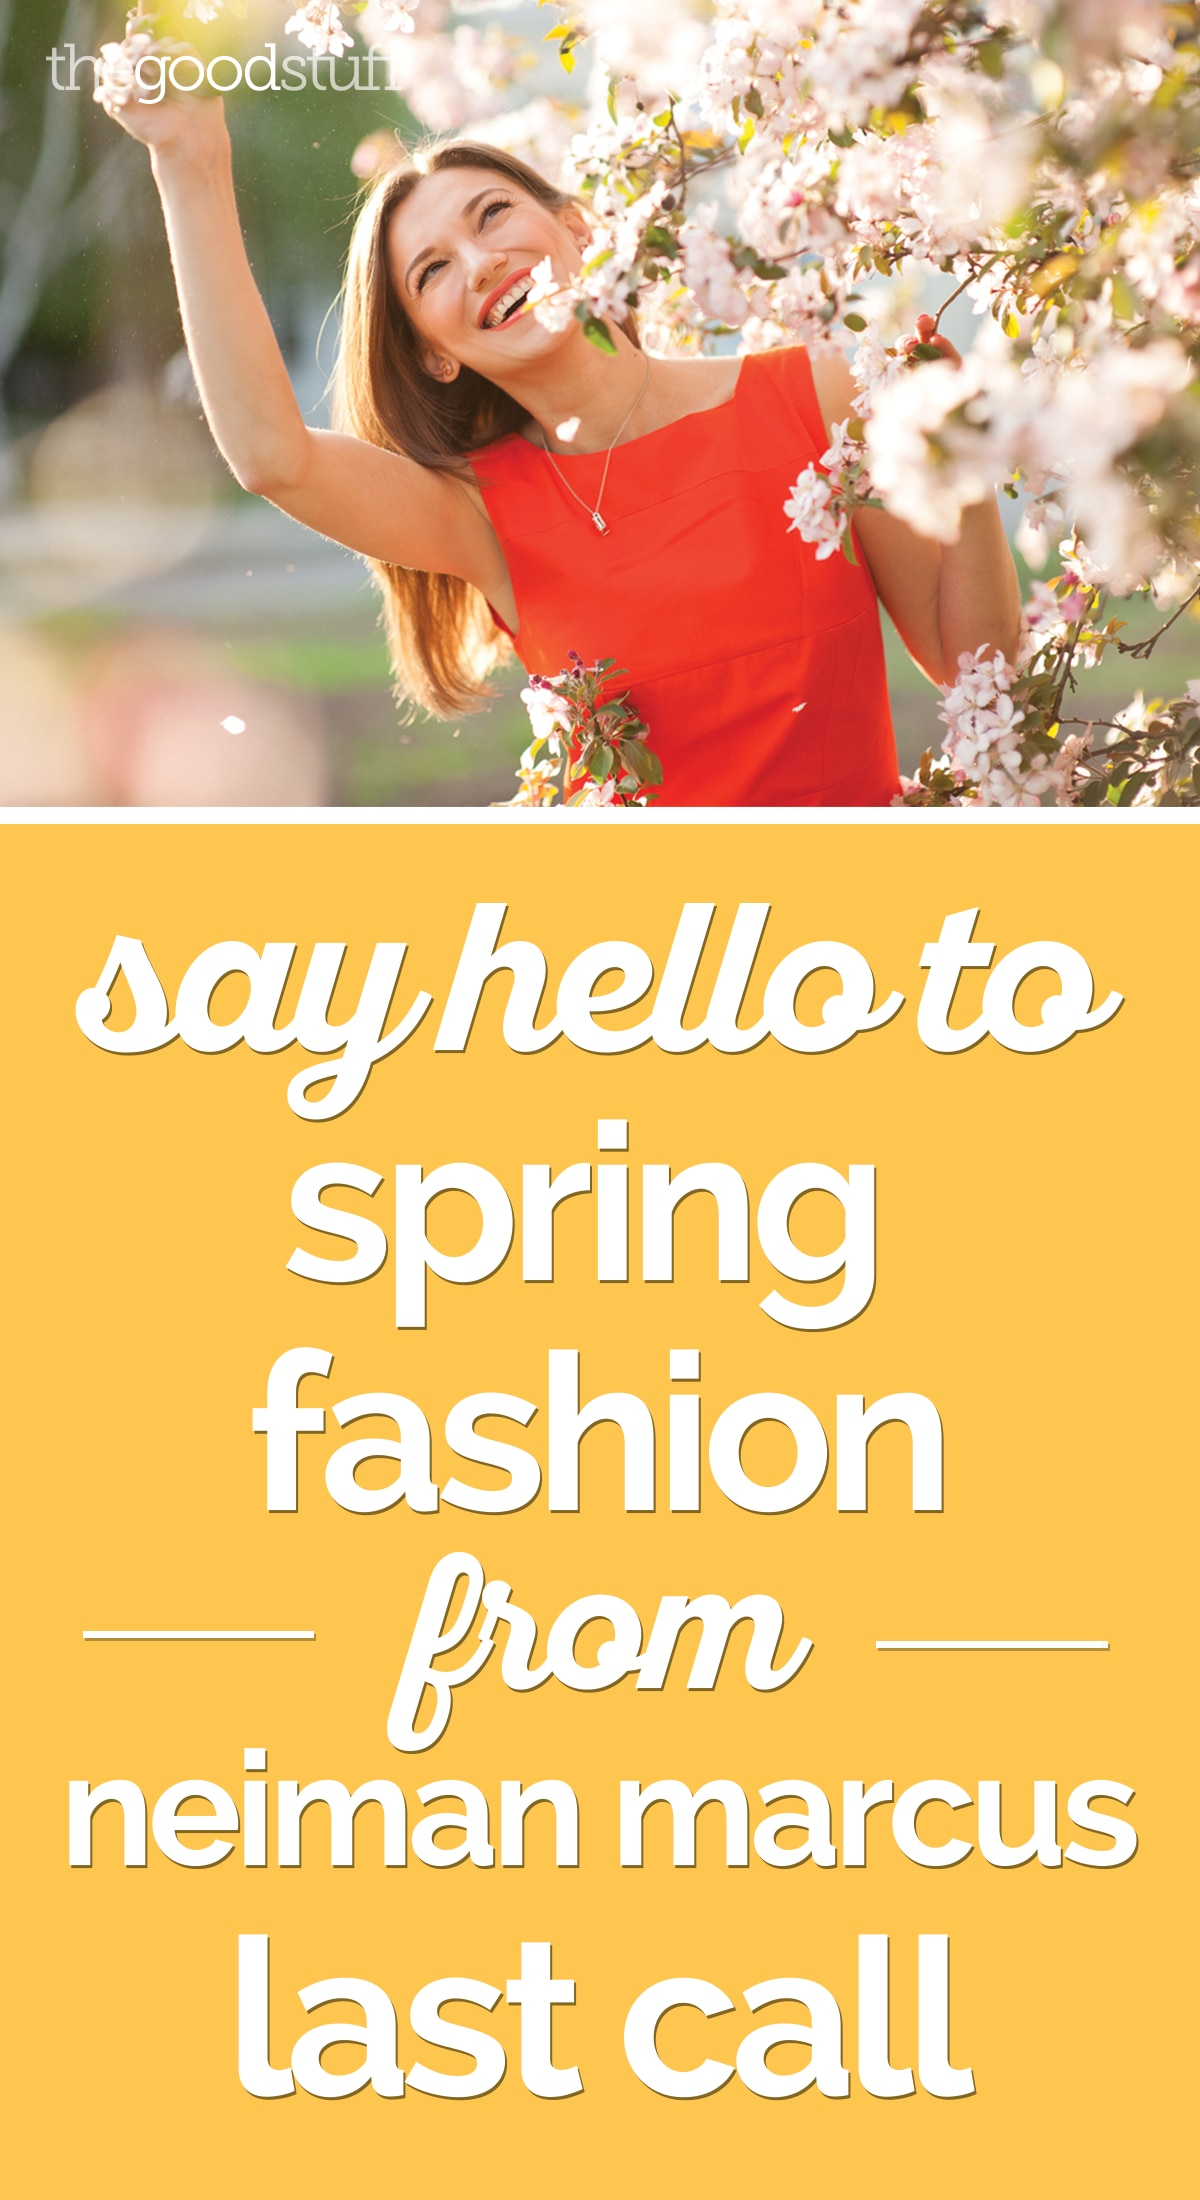 Say Hello to Spring Fashion from Neiman Marcus Last Call | thegoodstuff